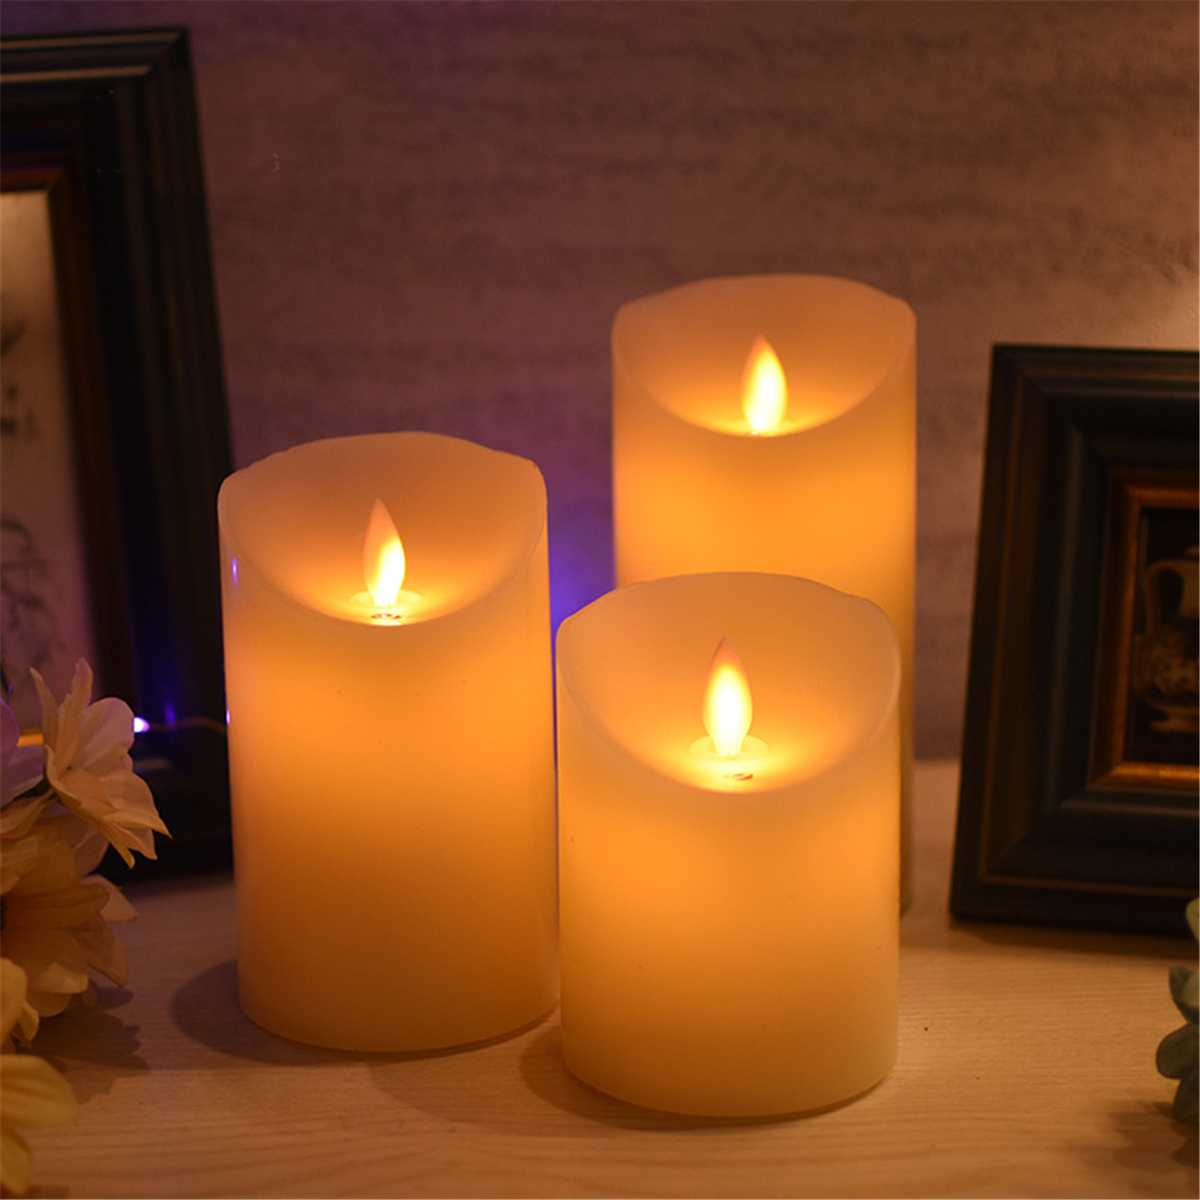 LED Candle Light Projector Desk Lamp Battery Powered Indoor Lighting Home Party Wedding Decoration Ornaments Gifts Night Light